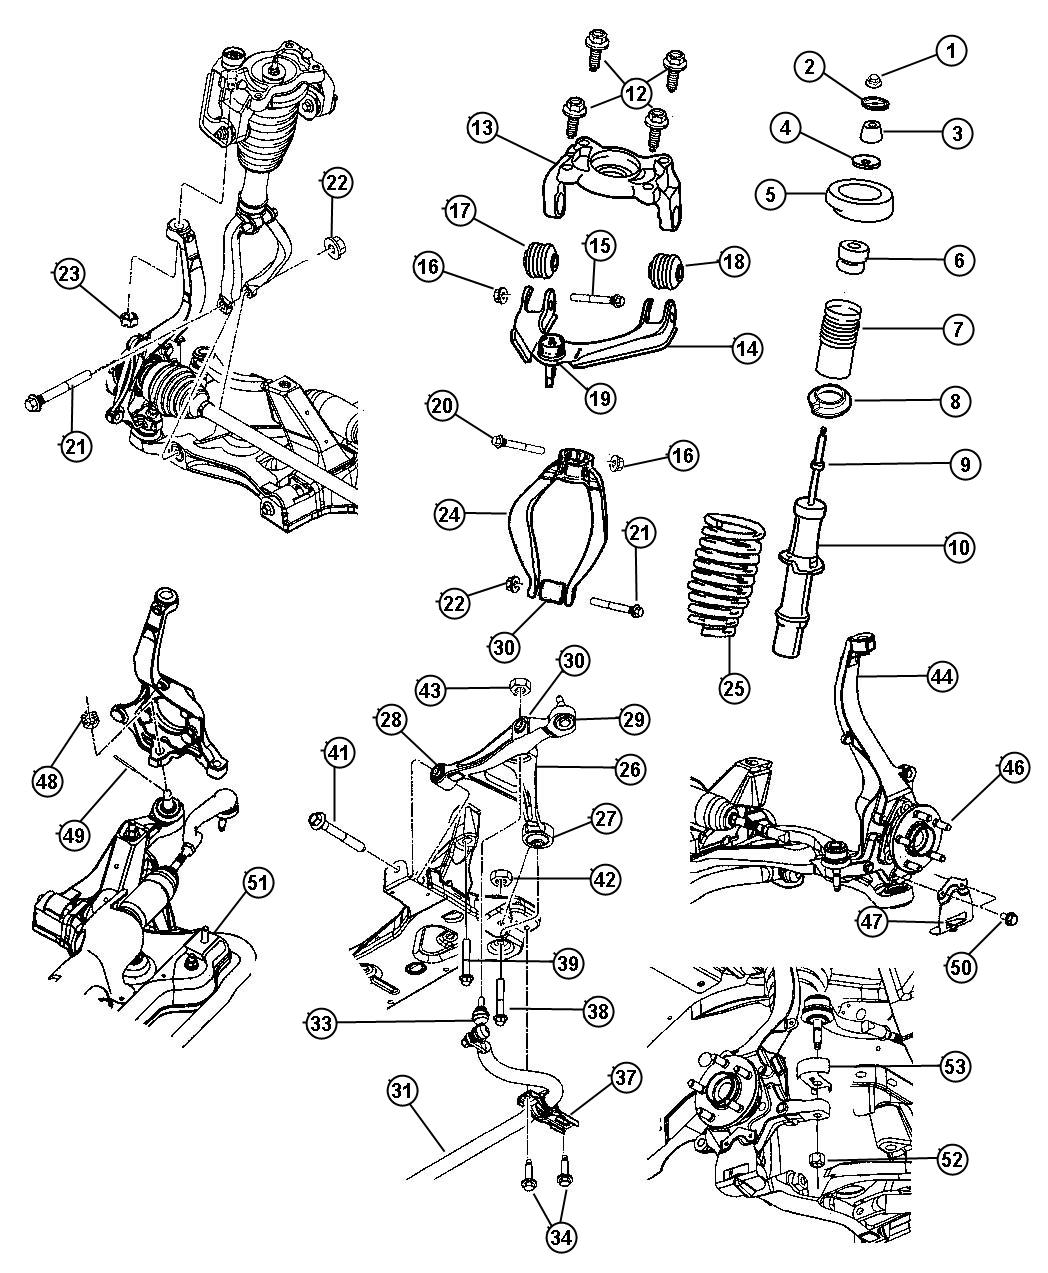 1969 Camaro Factory Tach Wiring Diagram 1969 Camaro Fuel